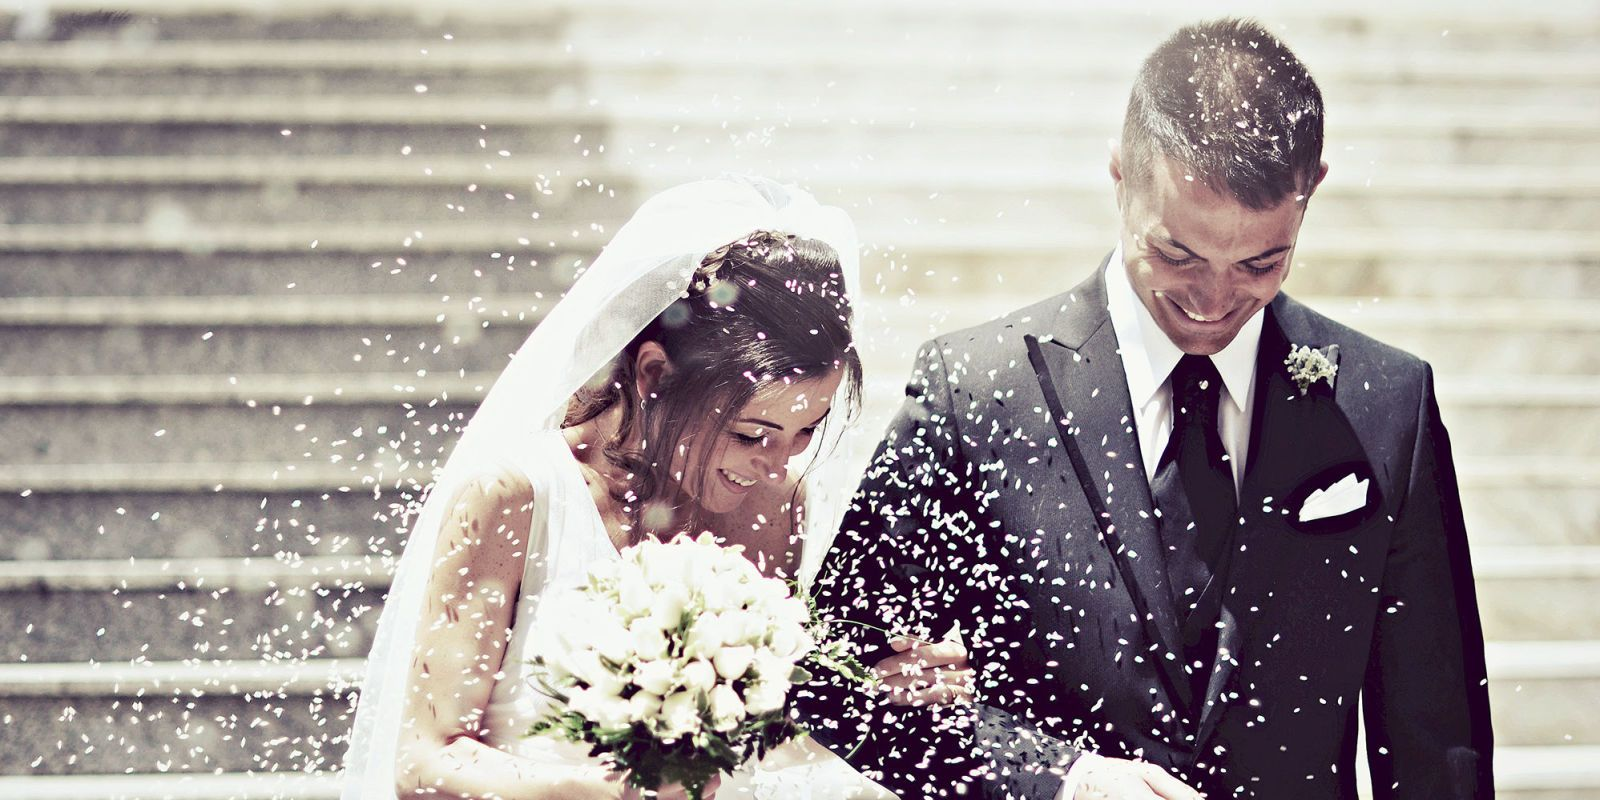 15 Marriage Myths You Do Not Need To Believe